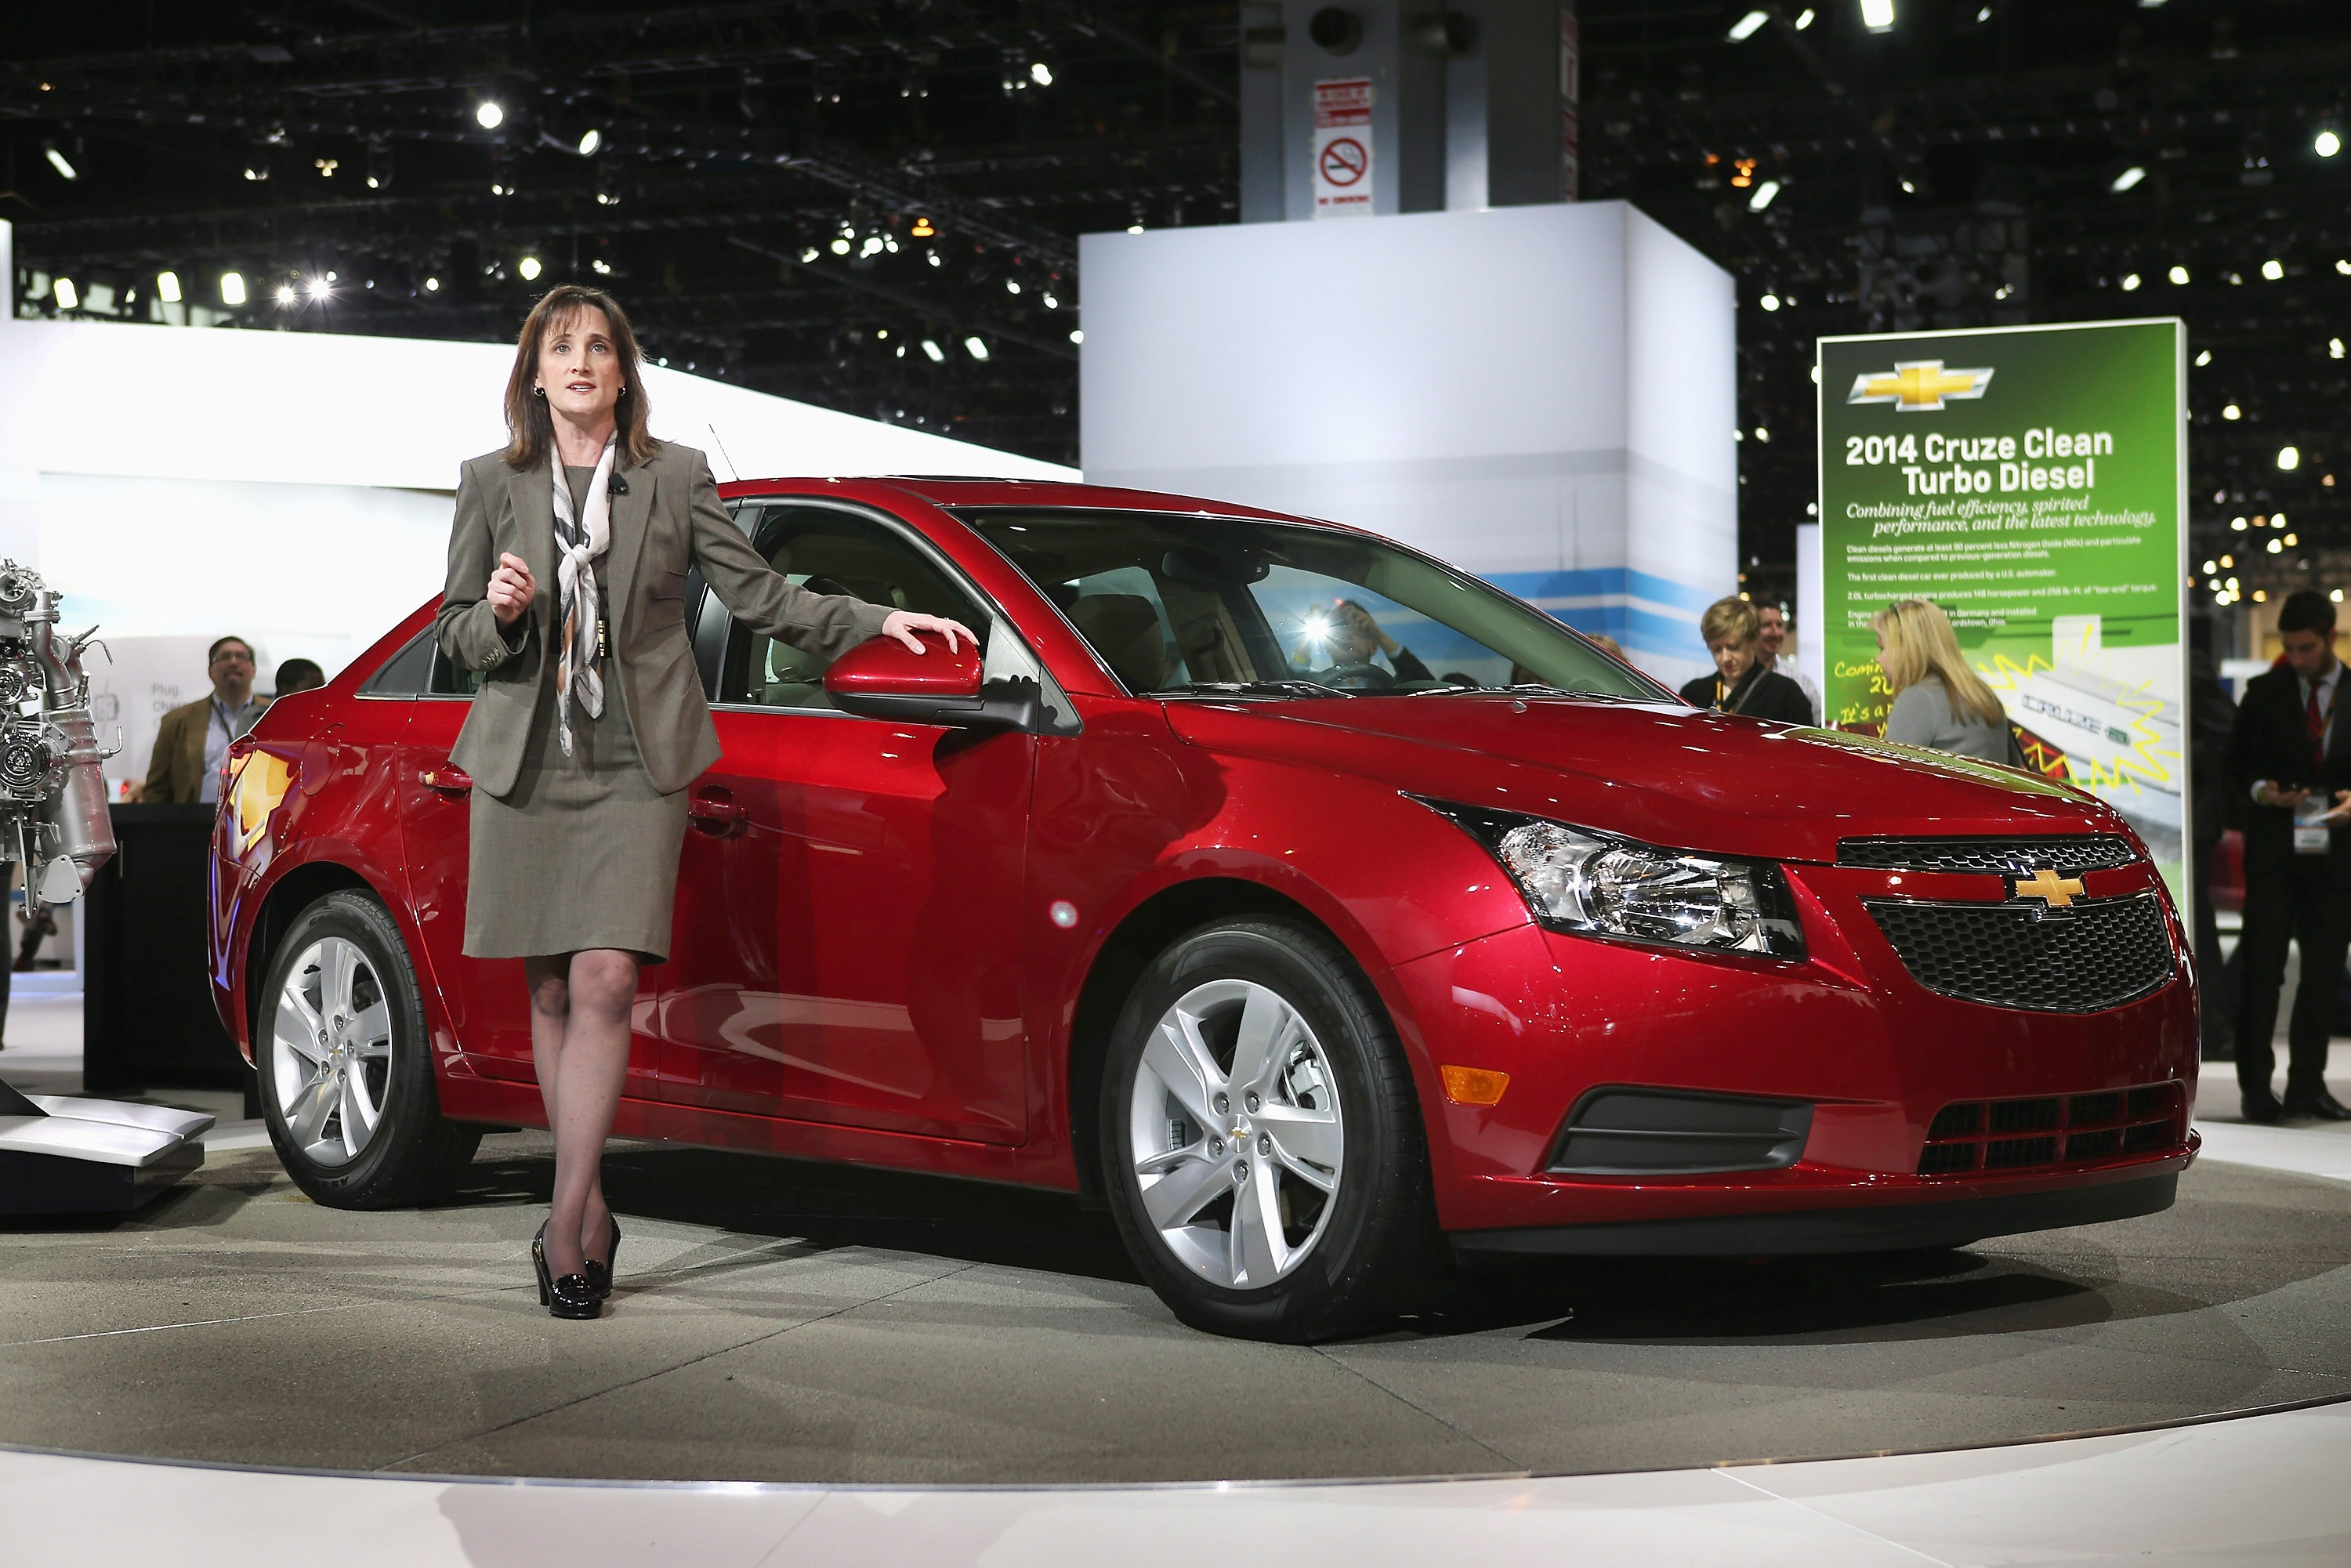 General Motors has notified dealers to suspend sales of 2013 and 2014 Chevy Cruzes after the discovery of a possible defect in their air bags.